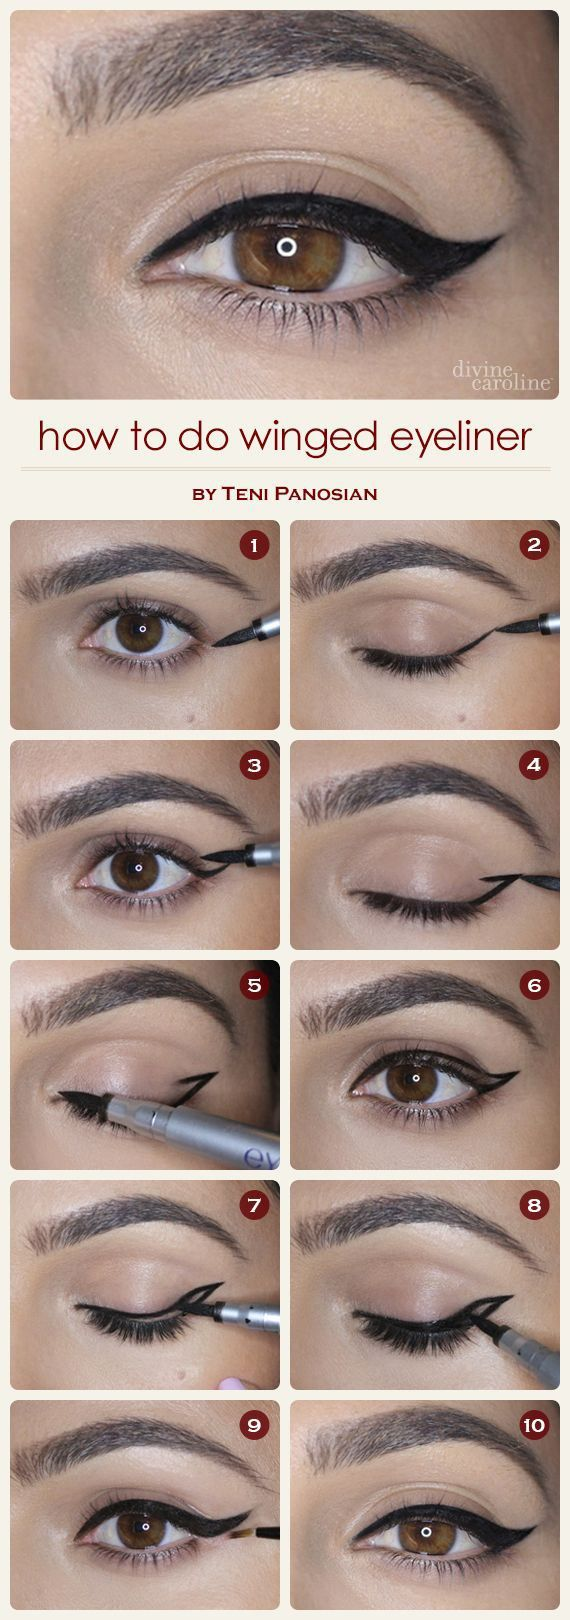 From a classic French braid to the ultimate eyeliner flick: The easiest and most brilliant one-picture beauty tutorials